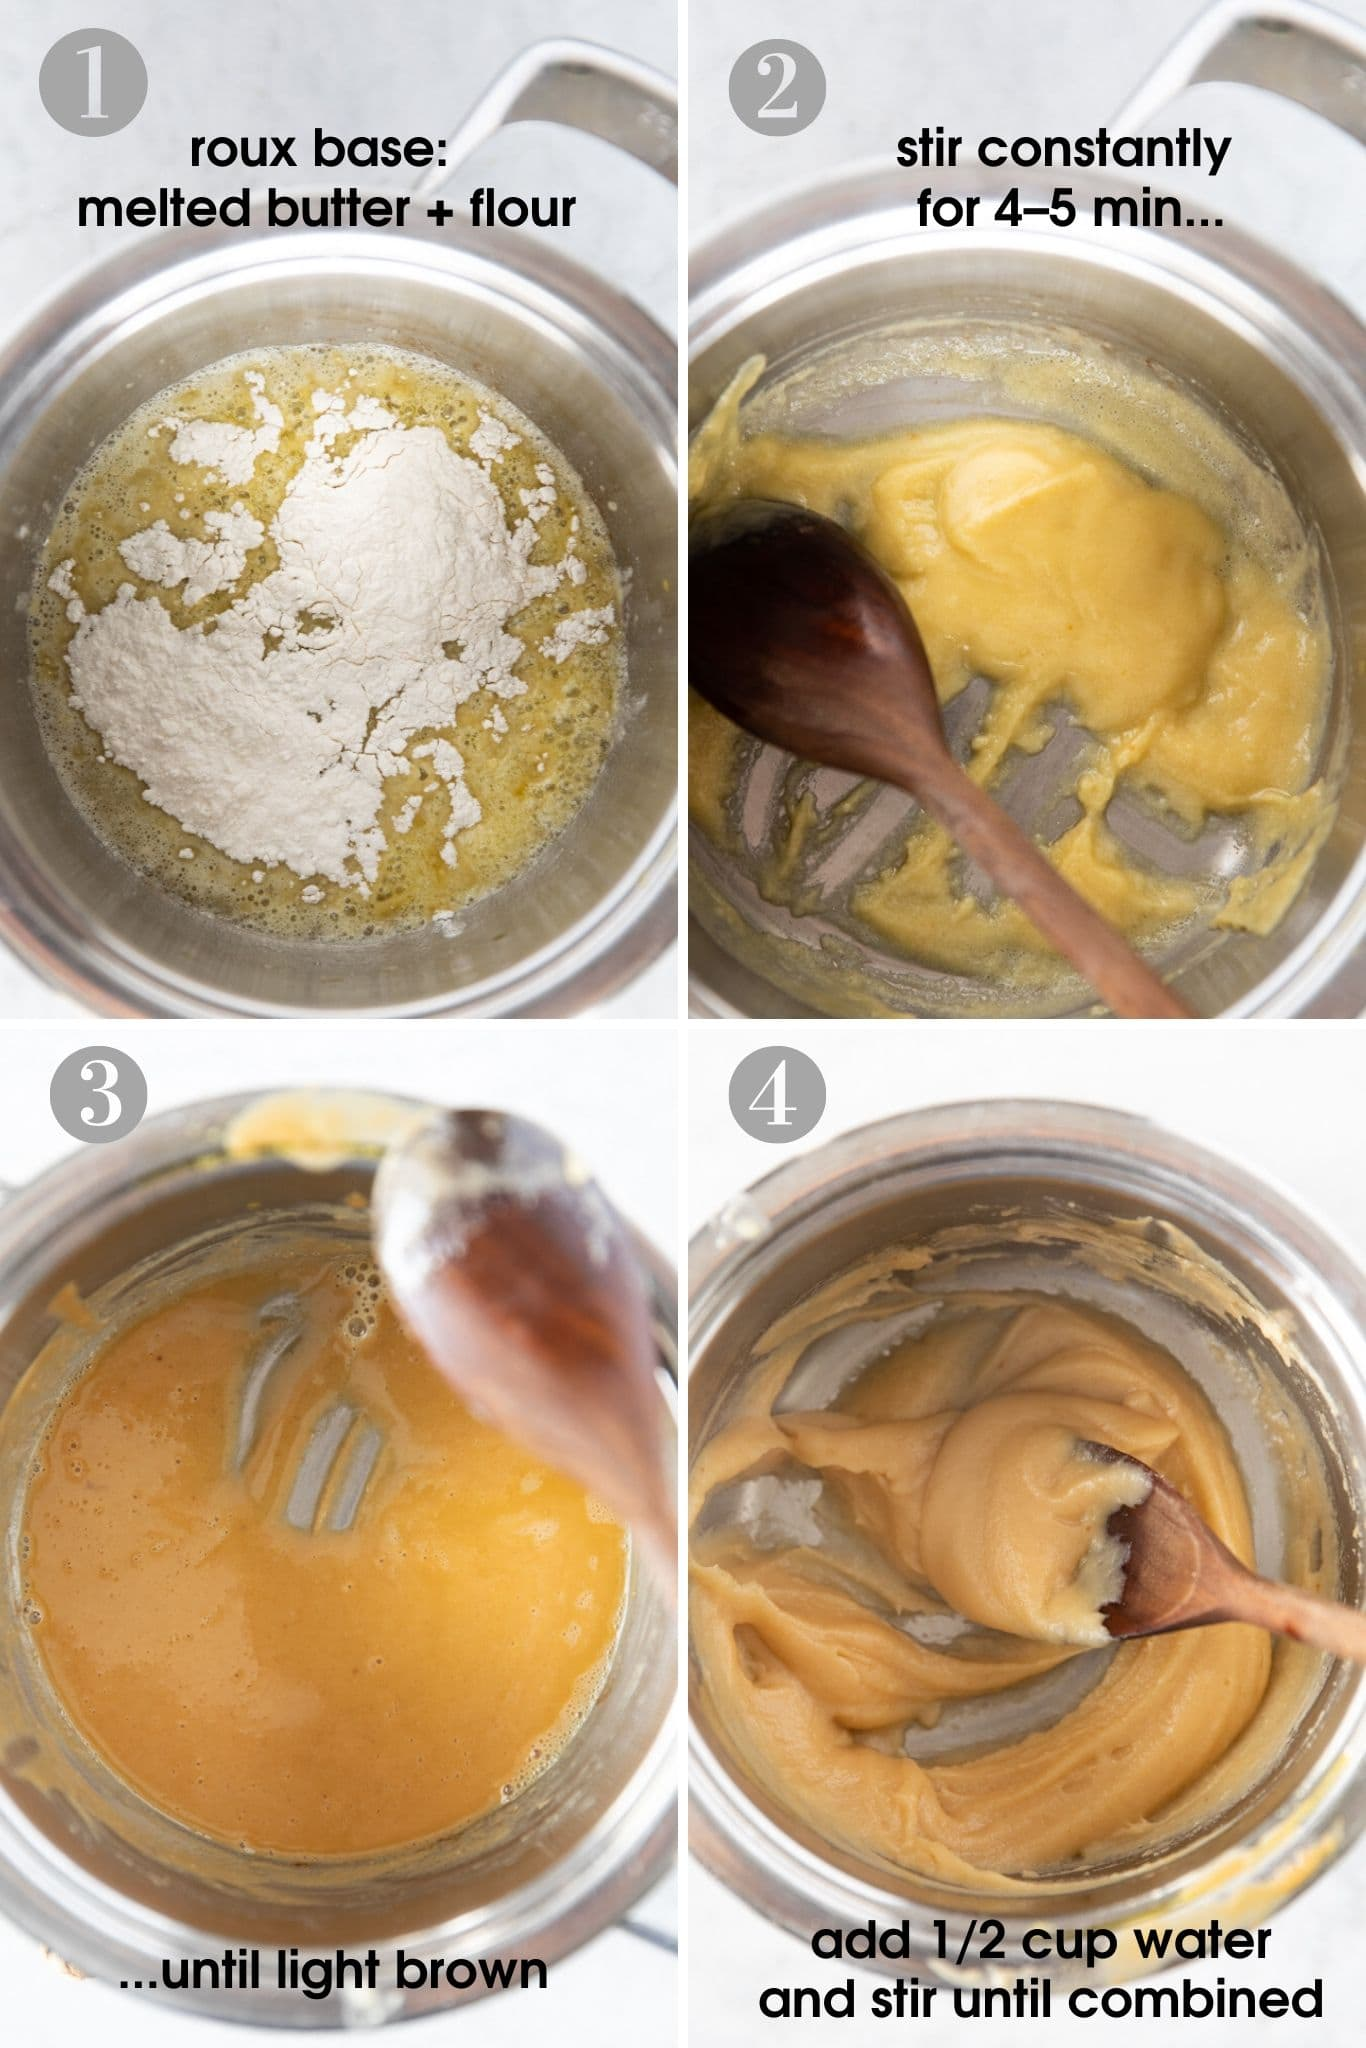 Four photos showing how to make roux as a soup base. Star with melted butter and all-purpose flour, and stir for 4-5 min until light brown, then add 1/2 cup water and stir